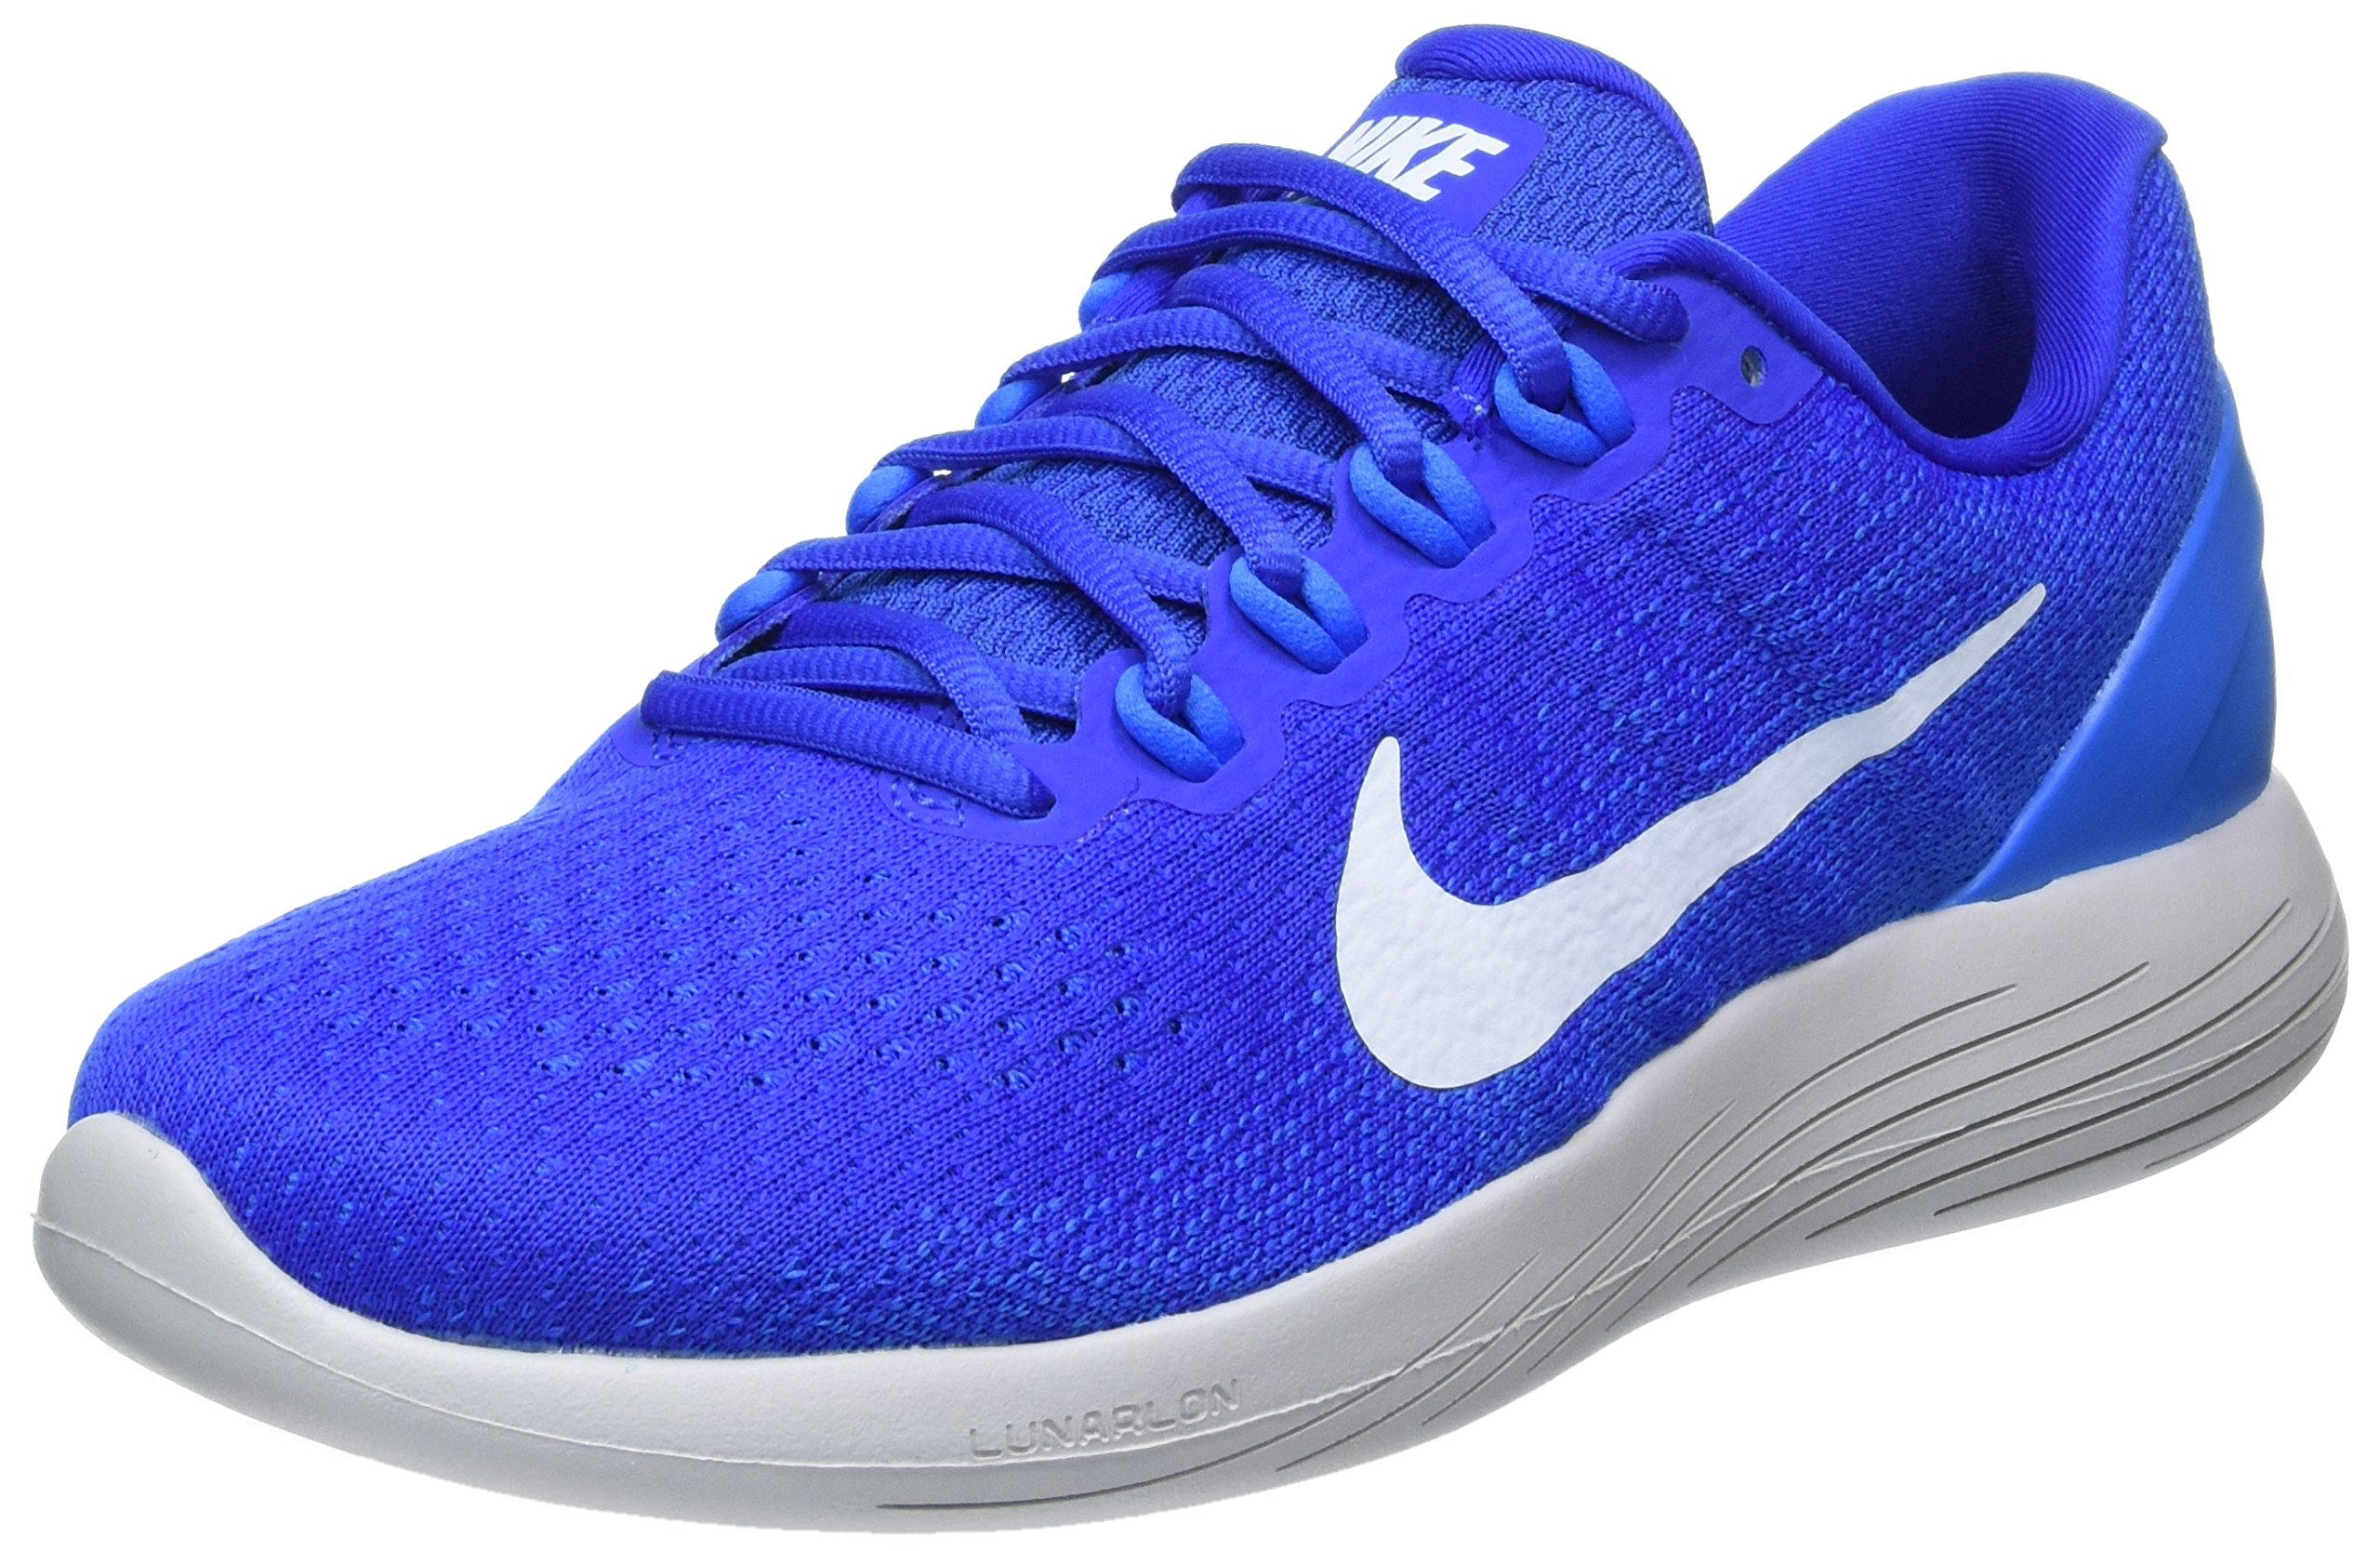 19f7ccfca528 Galleon - NIKE Men s Lunarglide 9 Running Shoe (15 D (M)